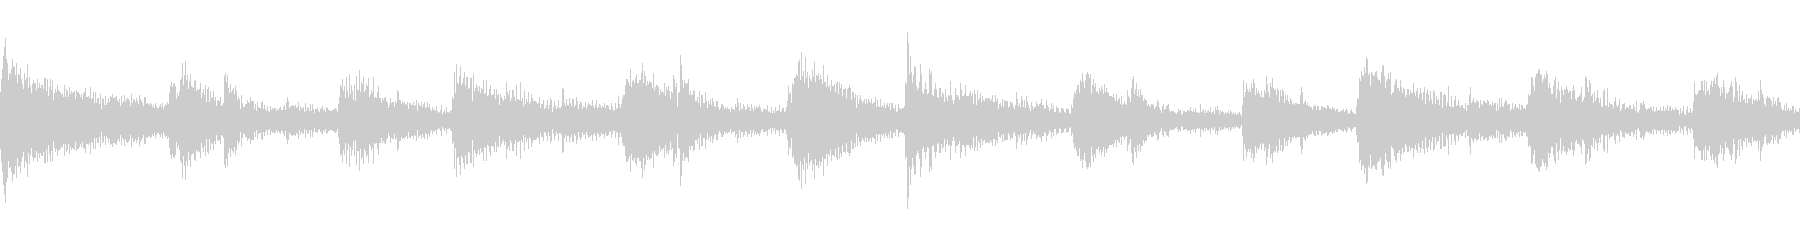 Upbeat, happy and...'s unreproduced waveform